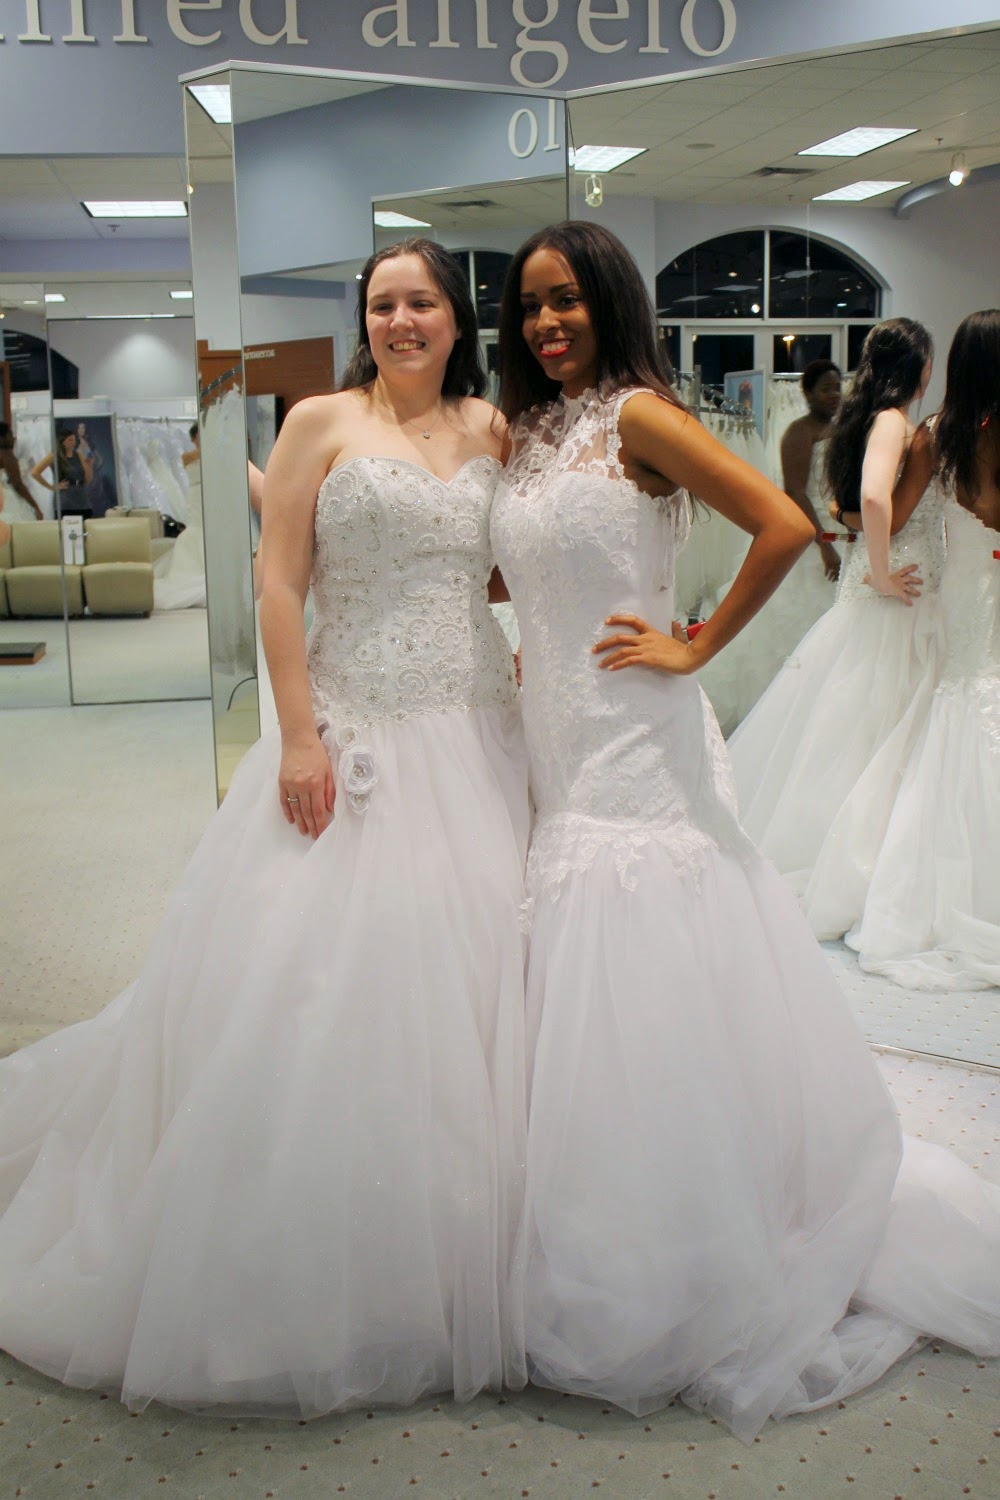 Tracie and Mina in wedding gowns